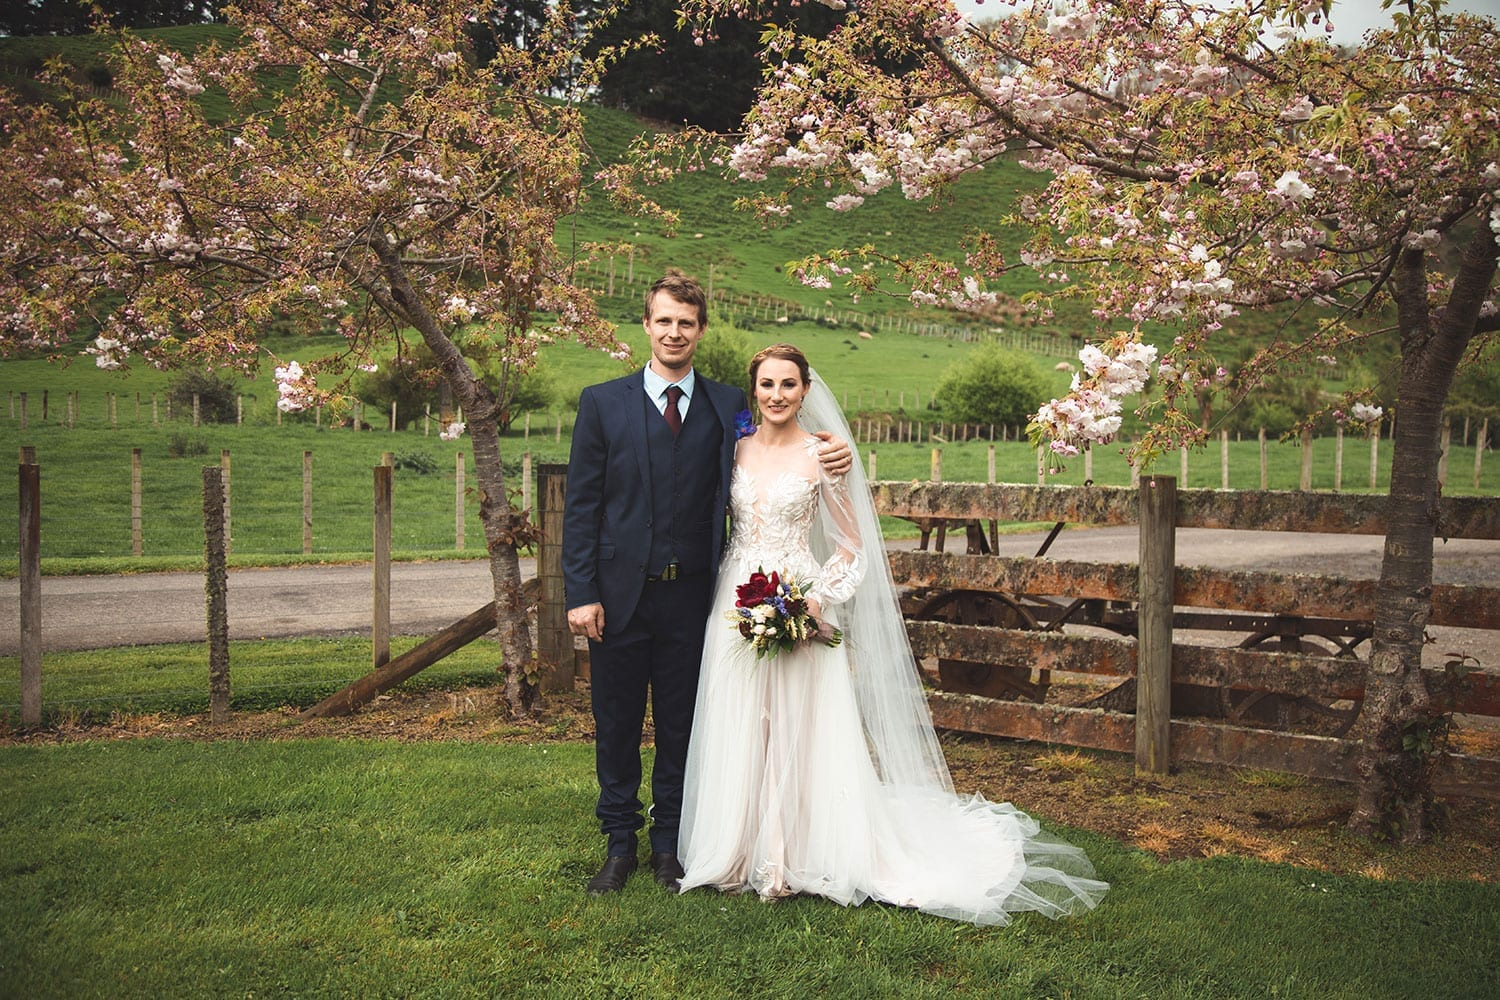 Vinka Design Features Real Weddings - bride in custom made gown, a combination of Isabelle and Ivy from our Heart of Havana collection. Bride and groom pose in field